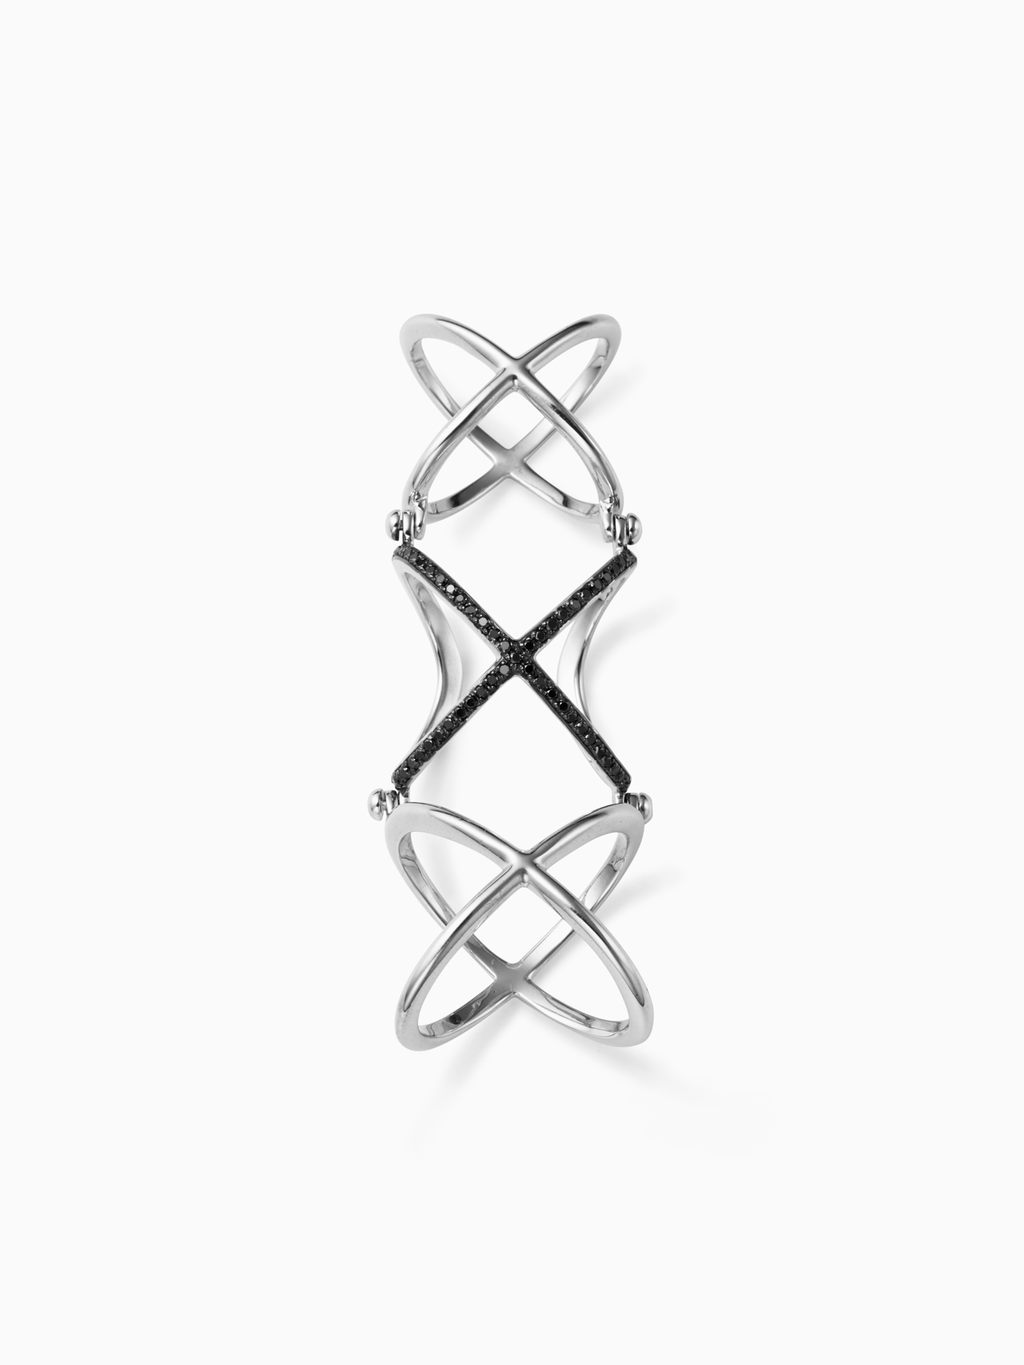 Mobius / 3Rings / Diamond / Silver